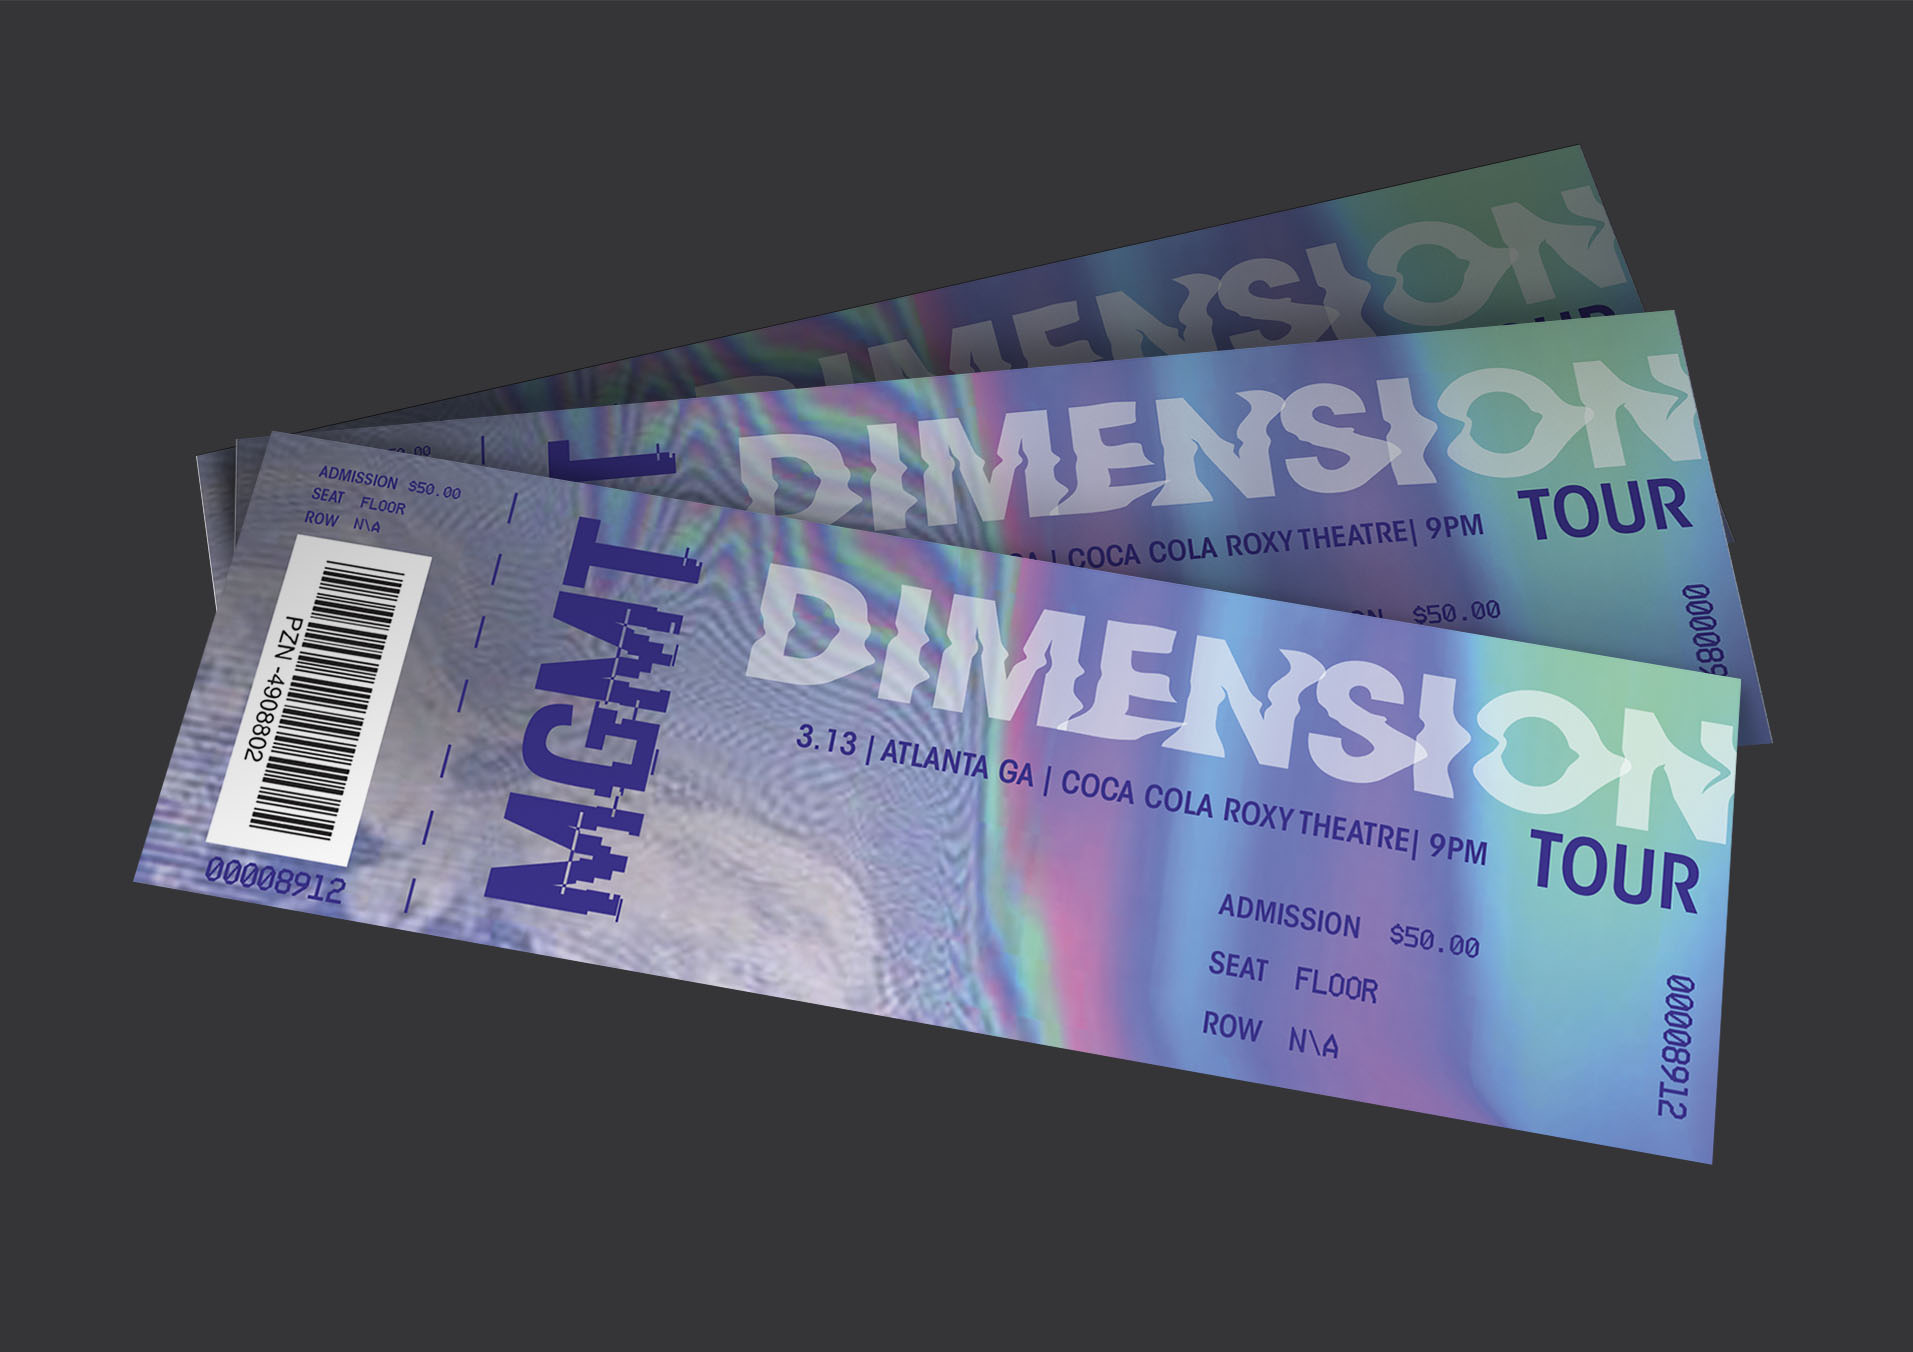 MGMT ticket mock up.jpg